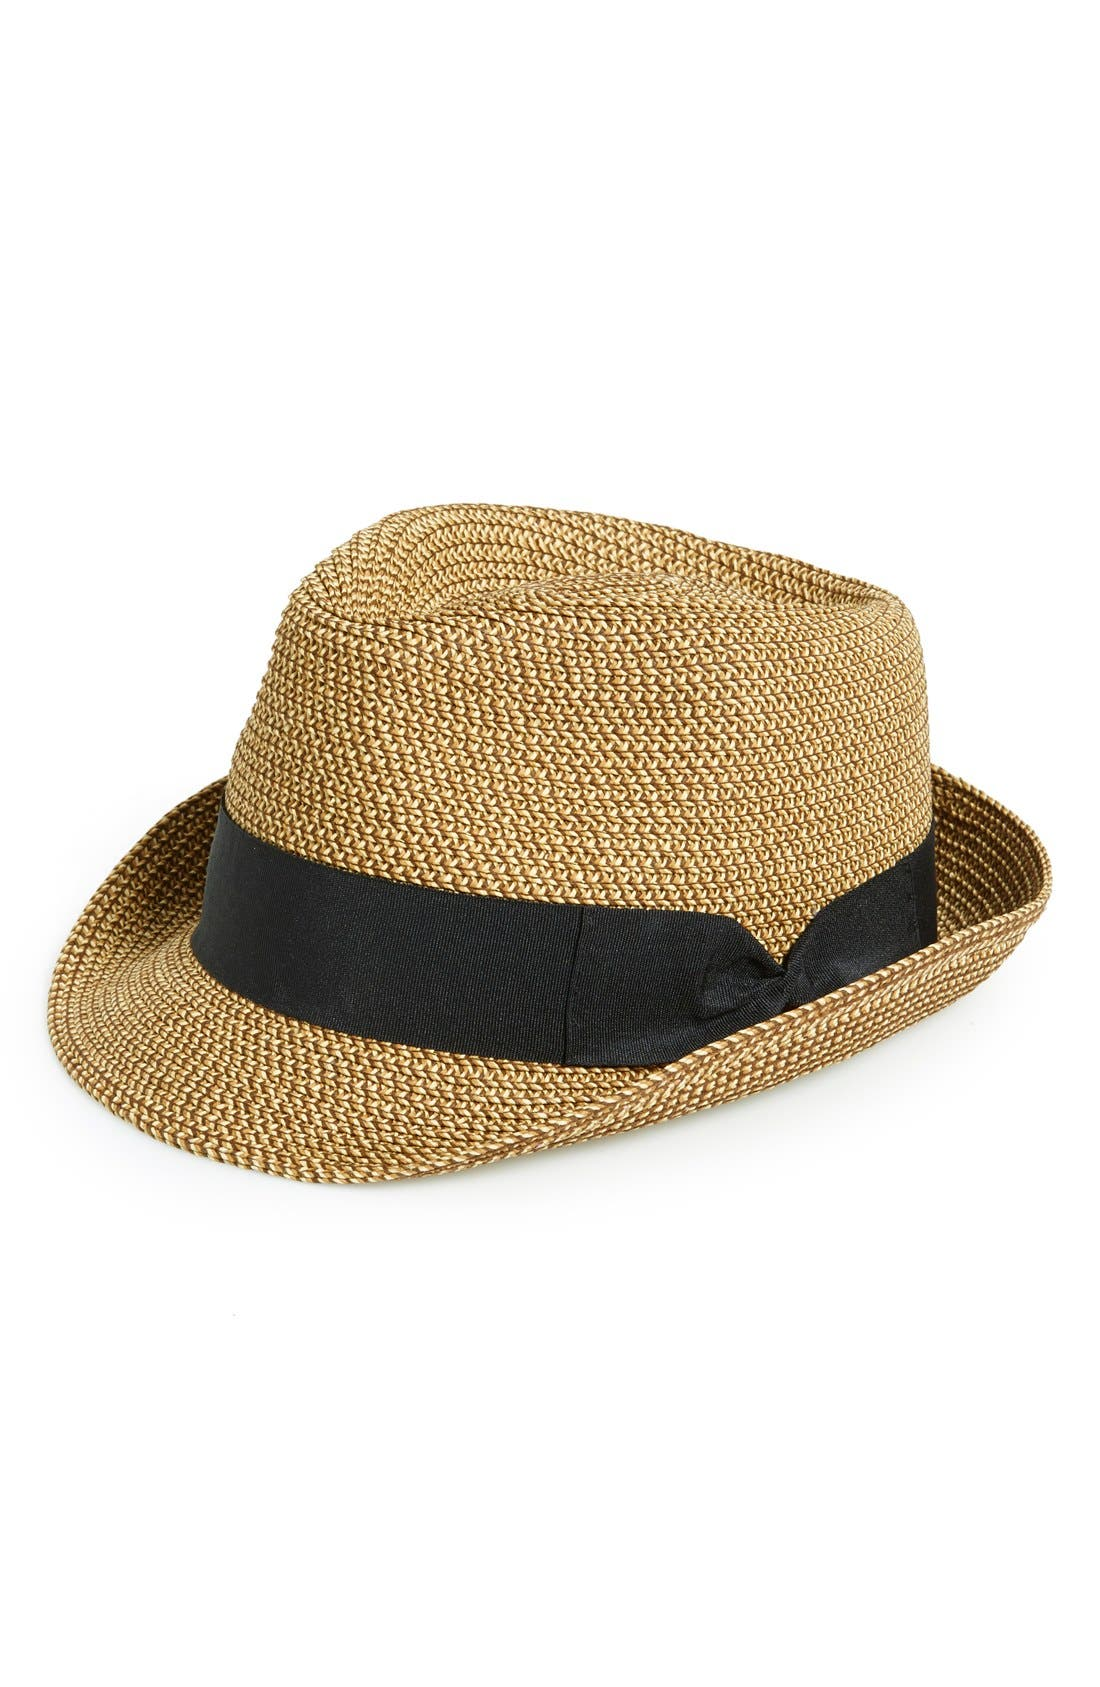 Straw Fedora,                         Main,                         color, Natural/ Black